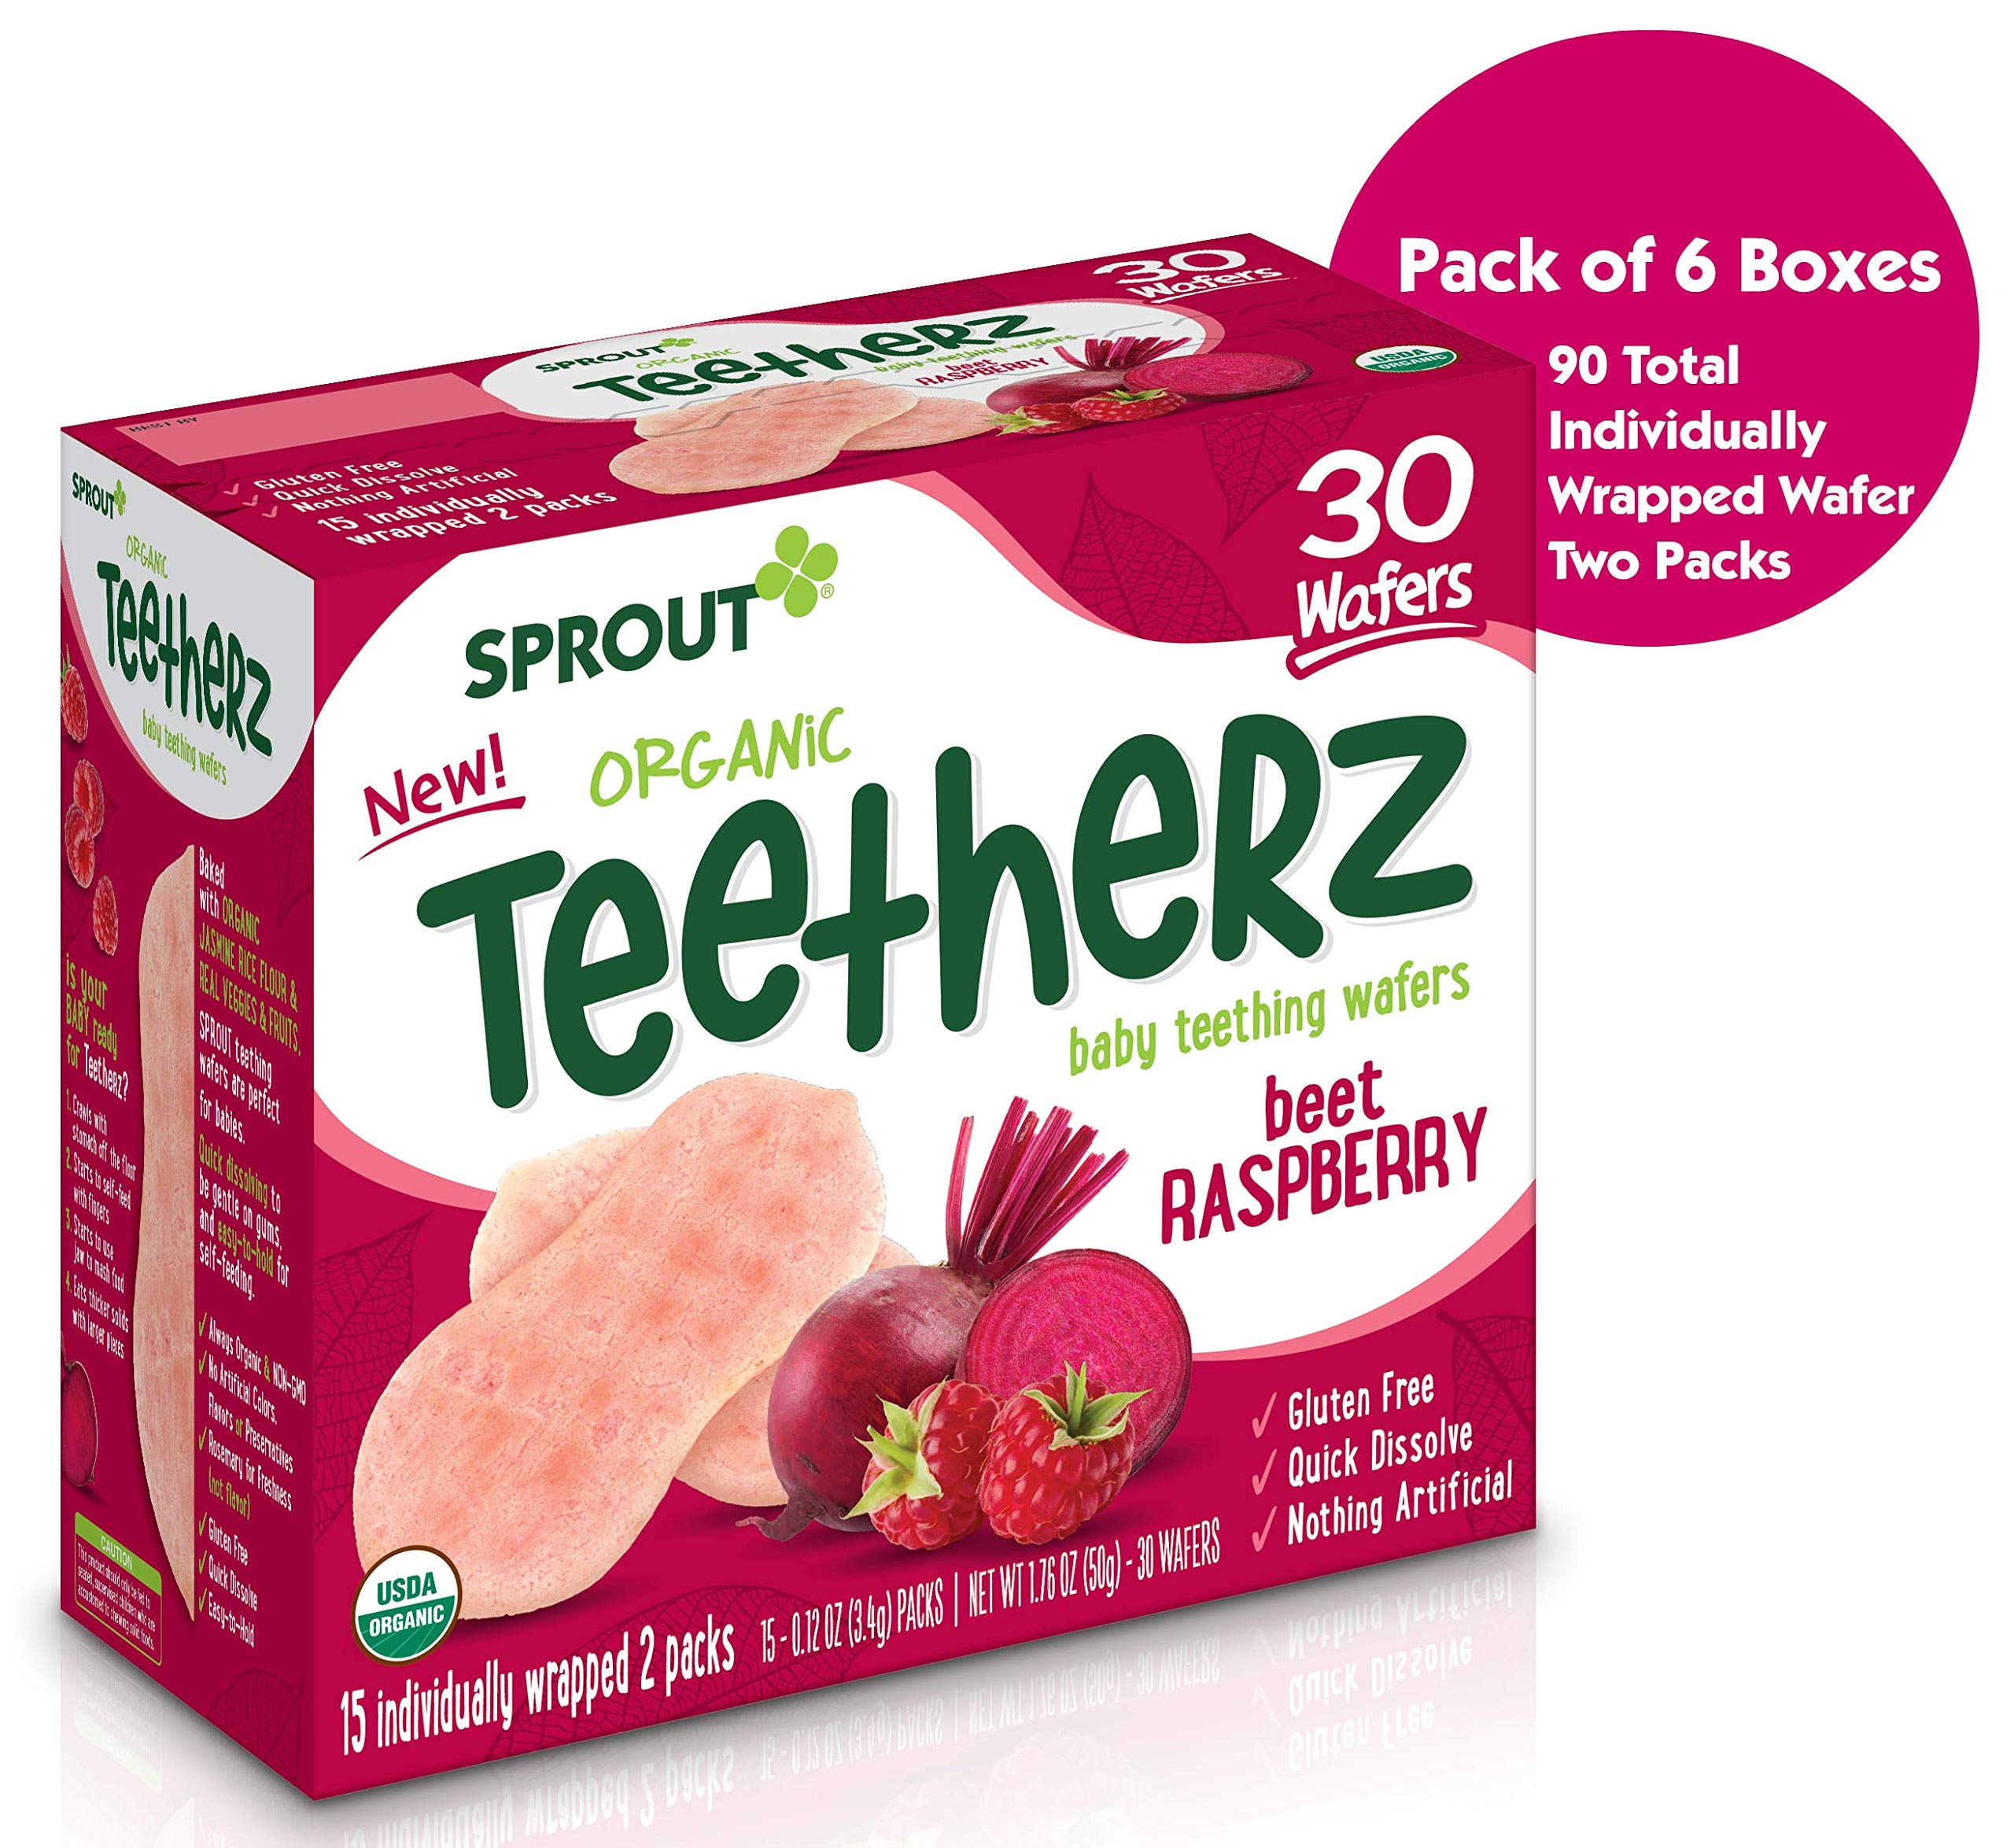 Sprout Organic Baby Food Teetherz Beet Rasberry Teething Wafers, 6Count